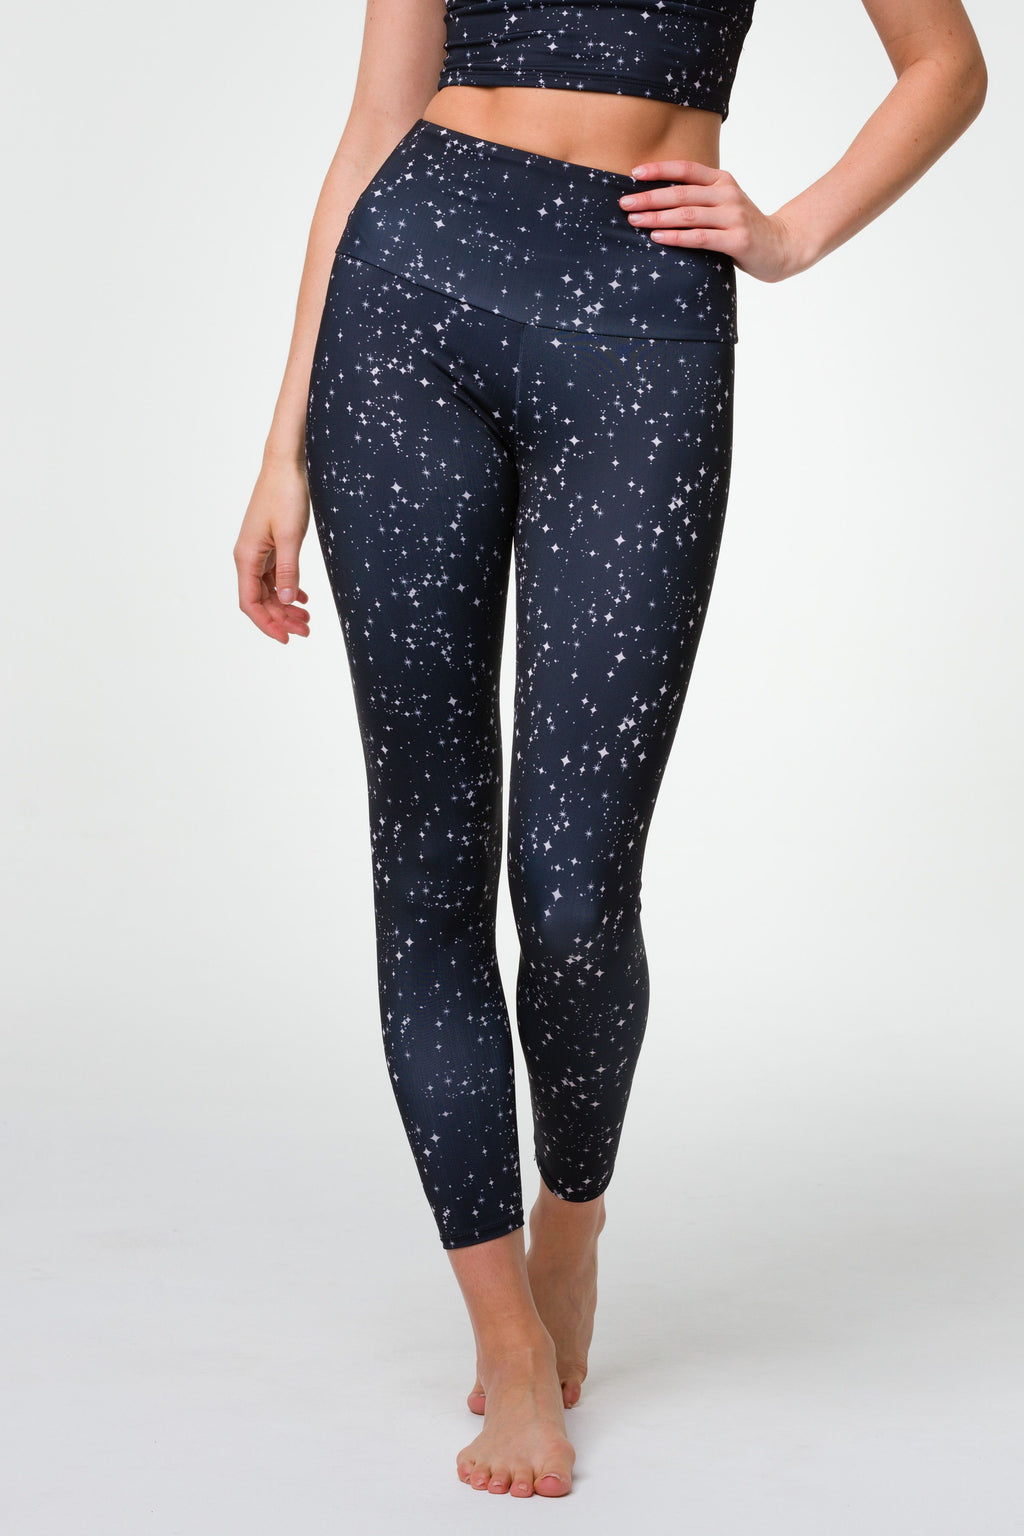 HIGH BASIC MIDI LEGGING - STARRY NIGHT